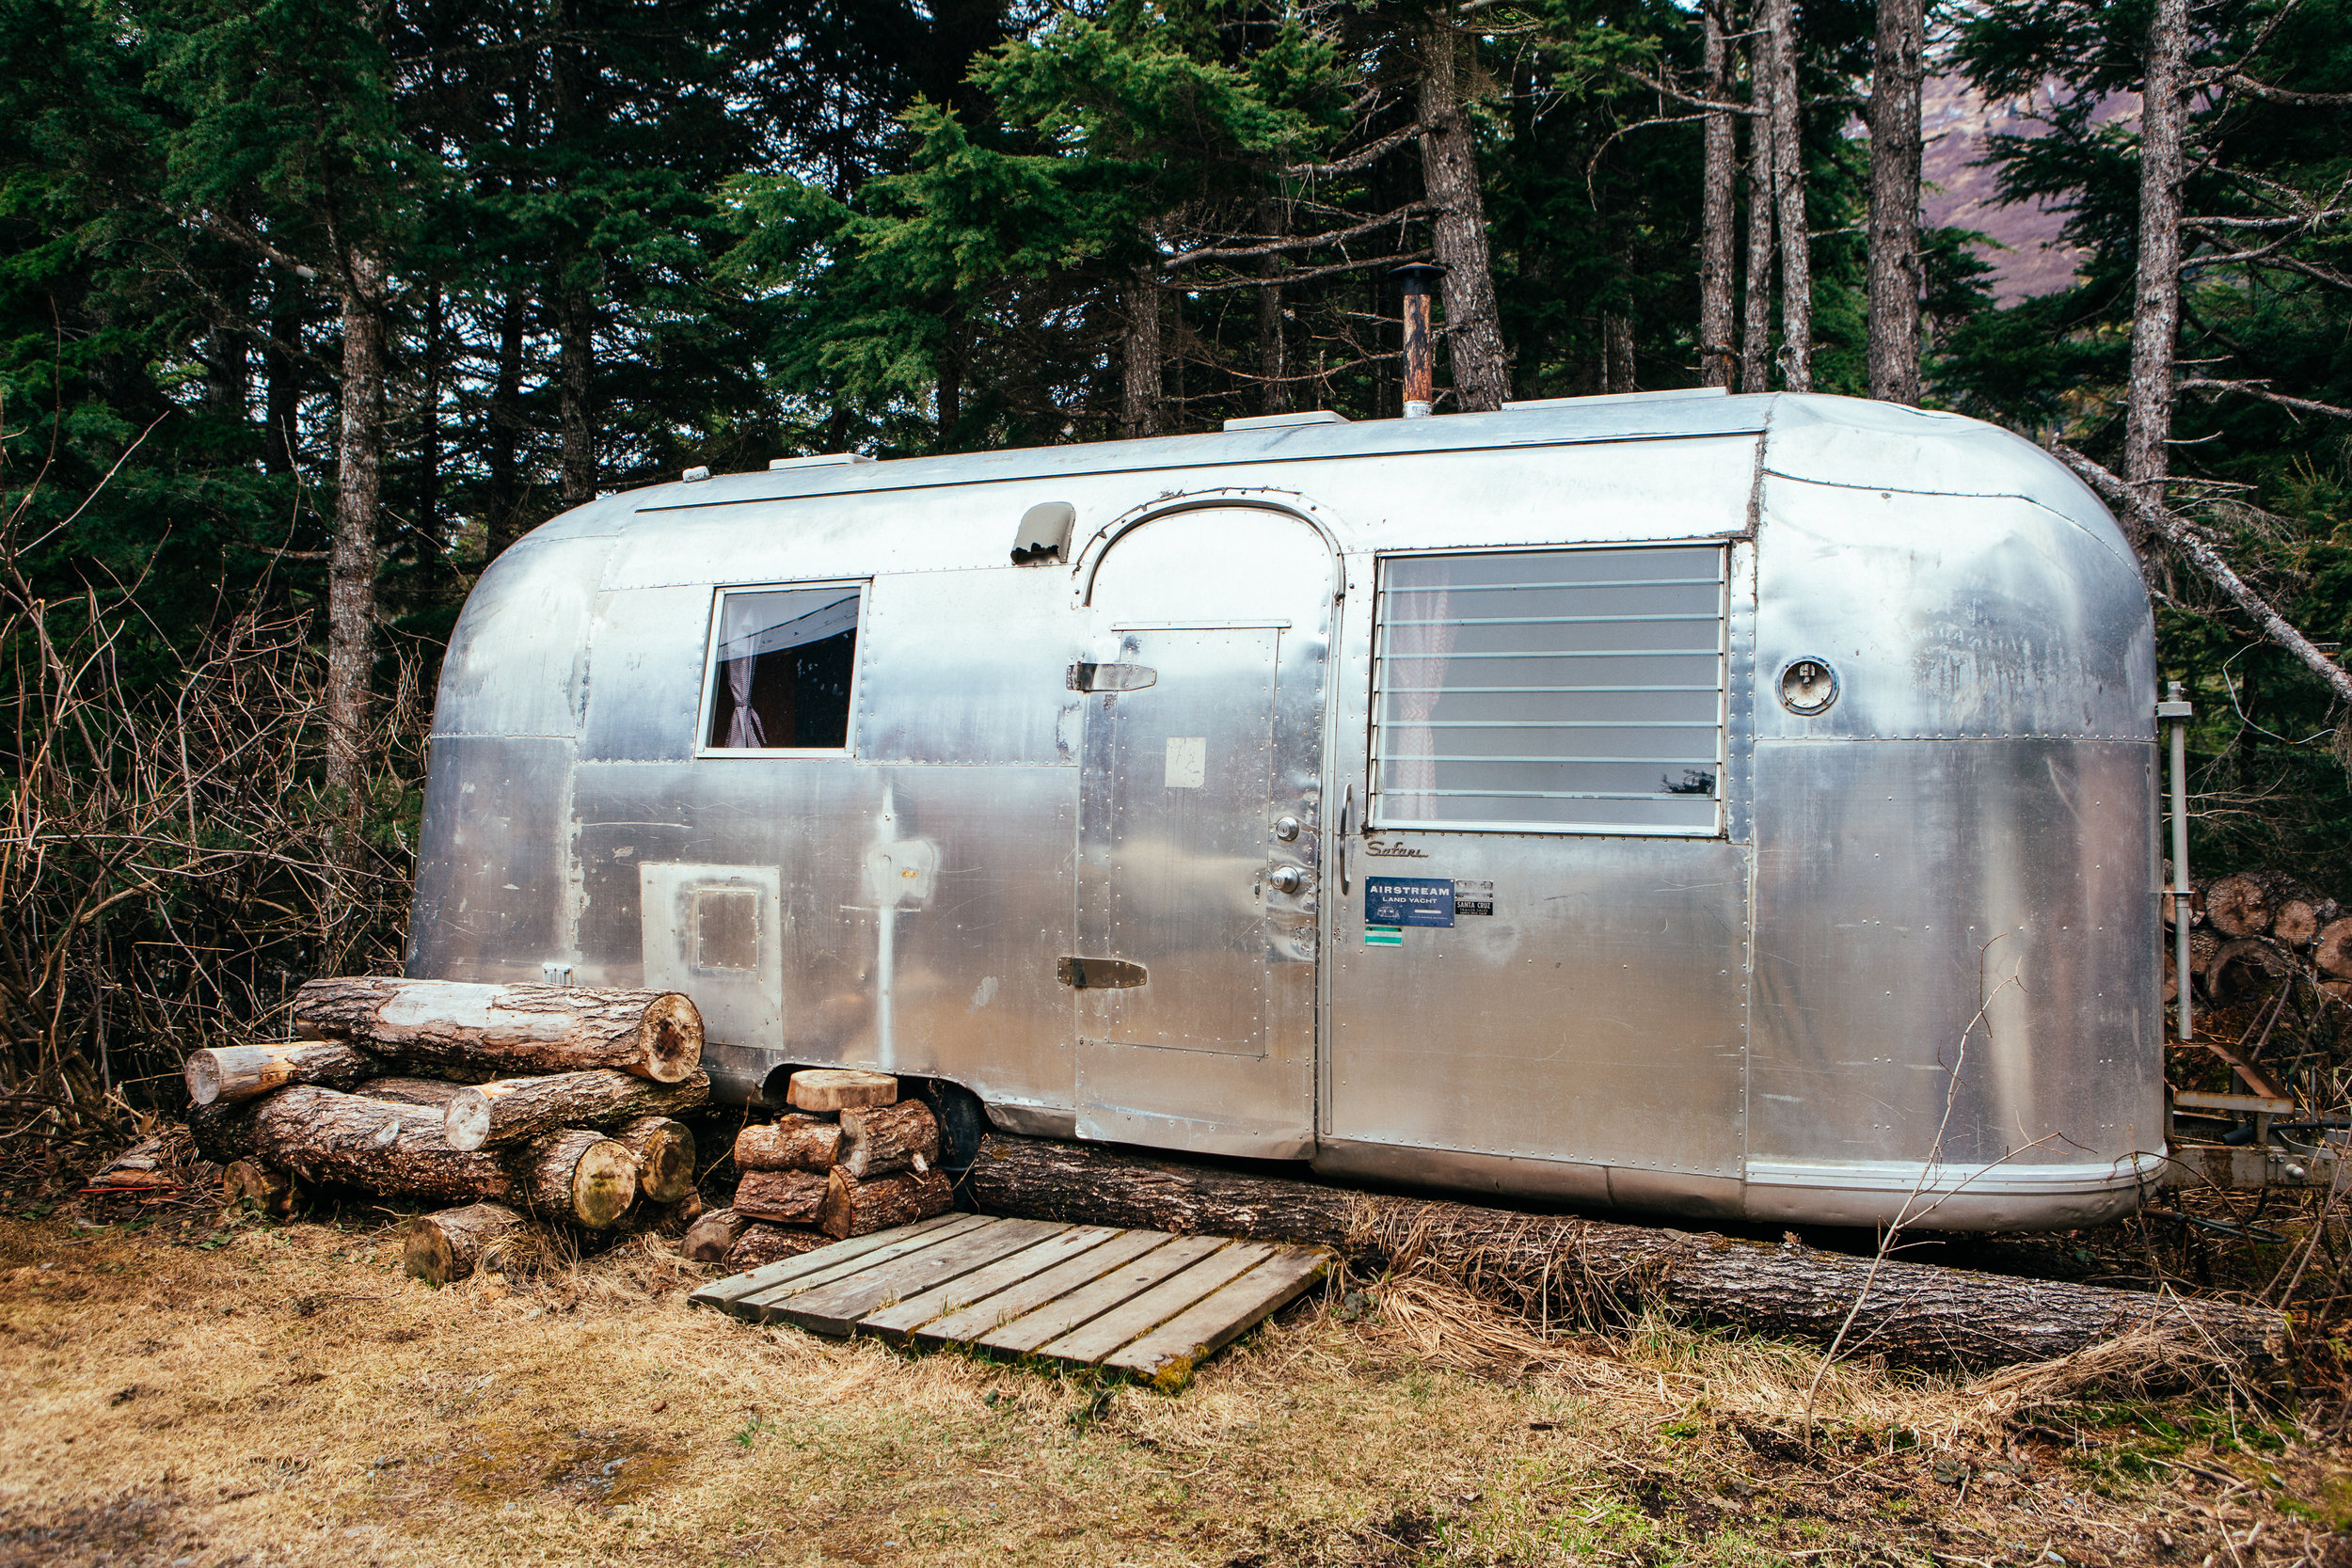 They set me up in their guest apt, a vintage Airstream Land Yacht!